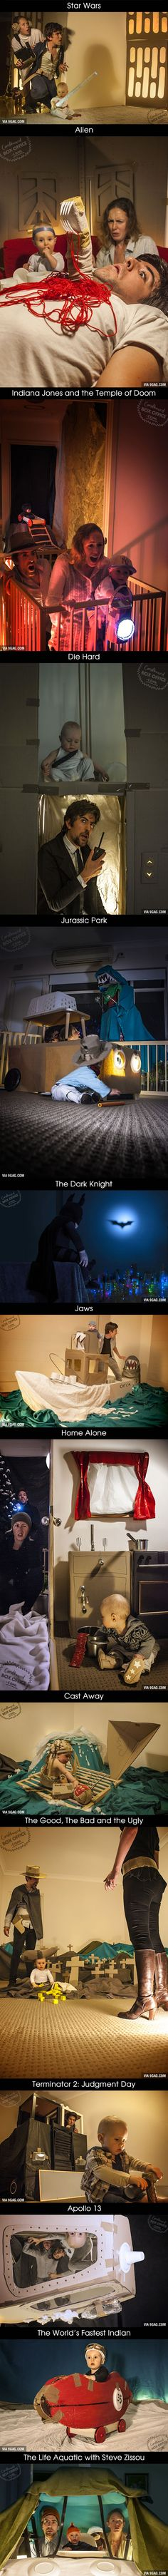 Coolest Parents Ever Recreate Famous Movie Scenes With Their Baby<---I want to be like these parents.